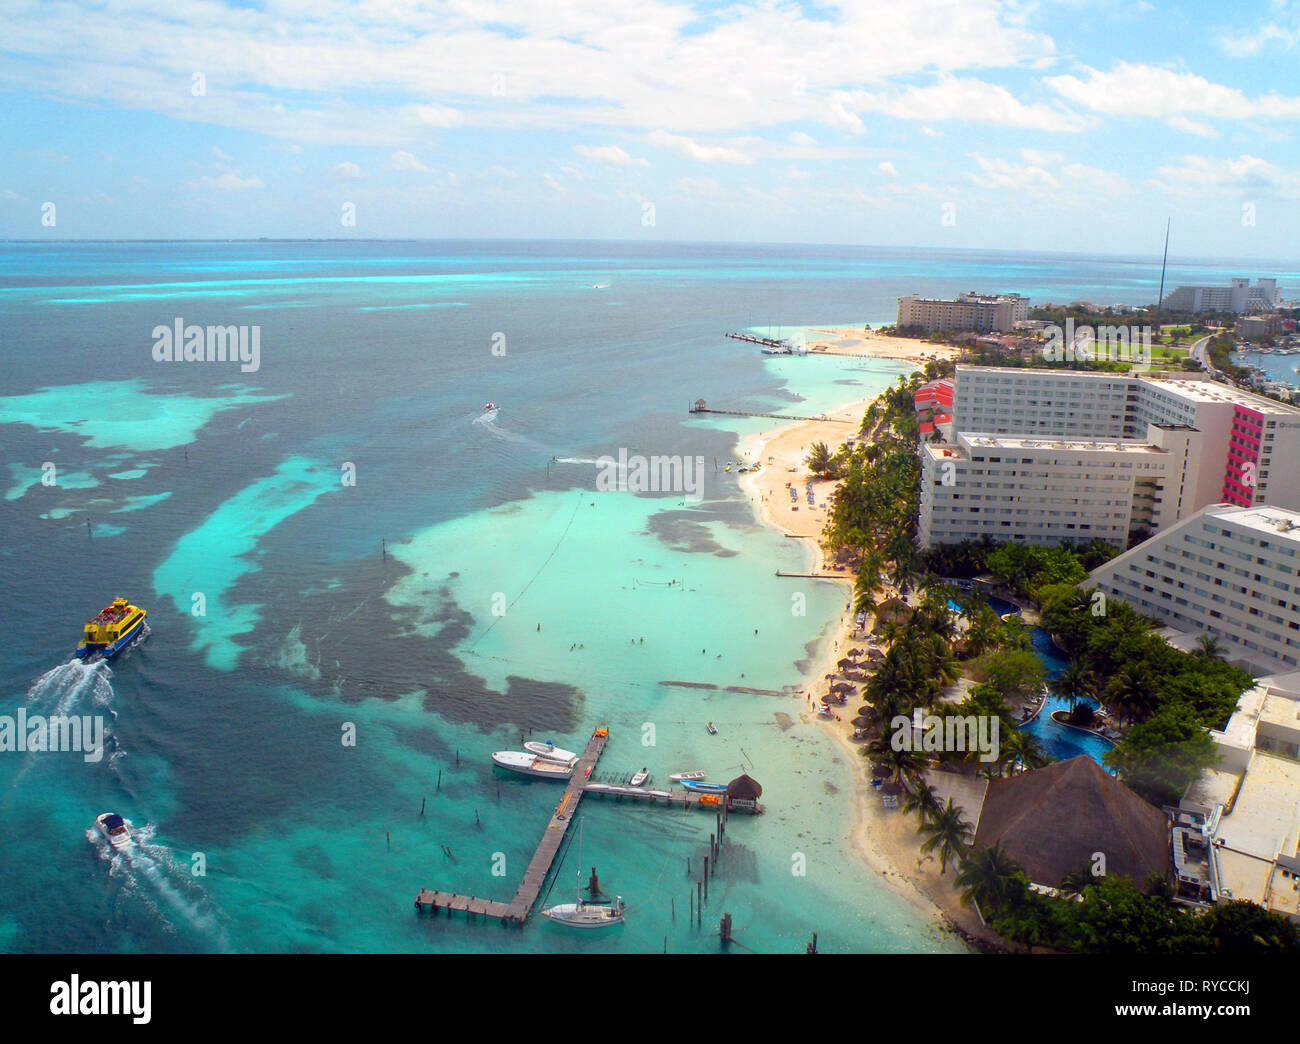 Aerial view of the hotel zone of Cancun with the sea, docks, boats and catamarans - Stock Image